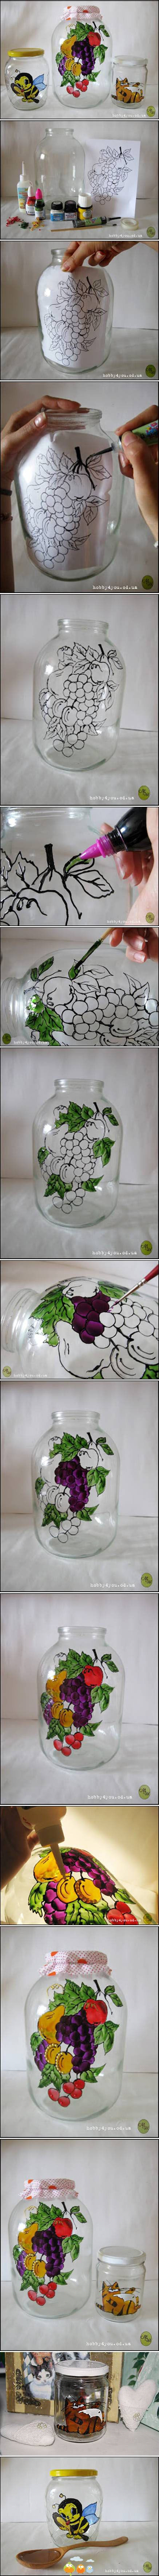 Clever way to paint something special and personal.